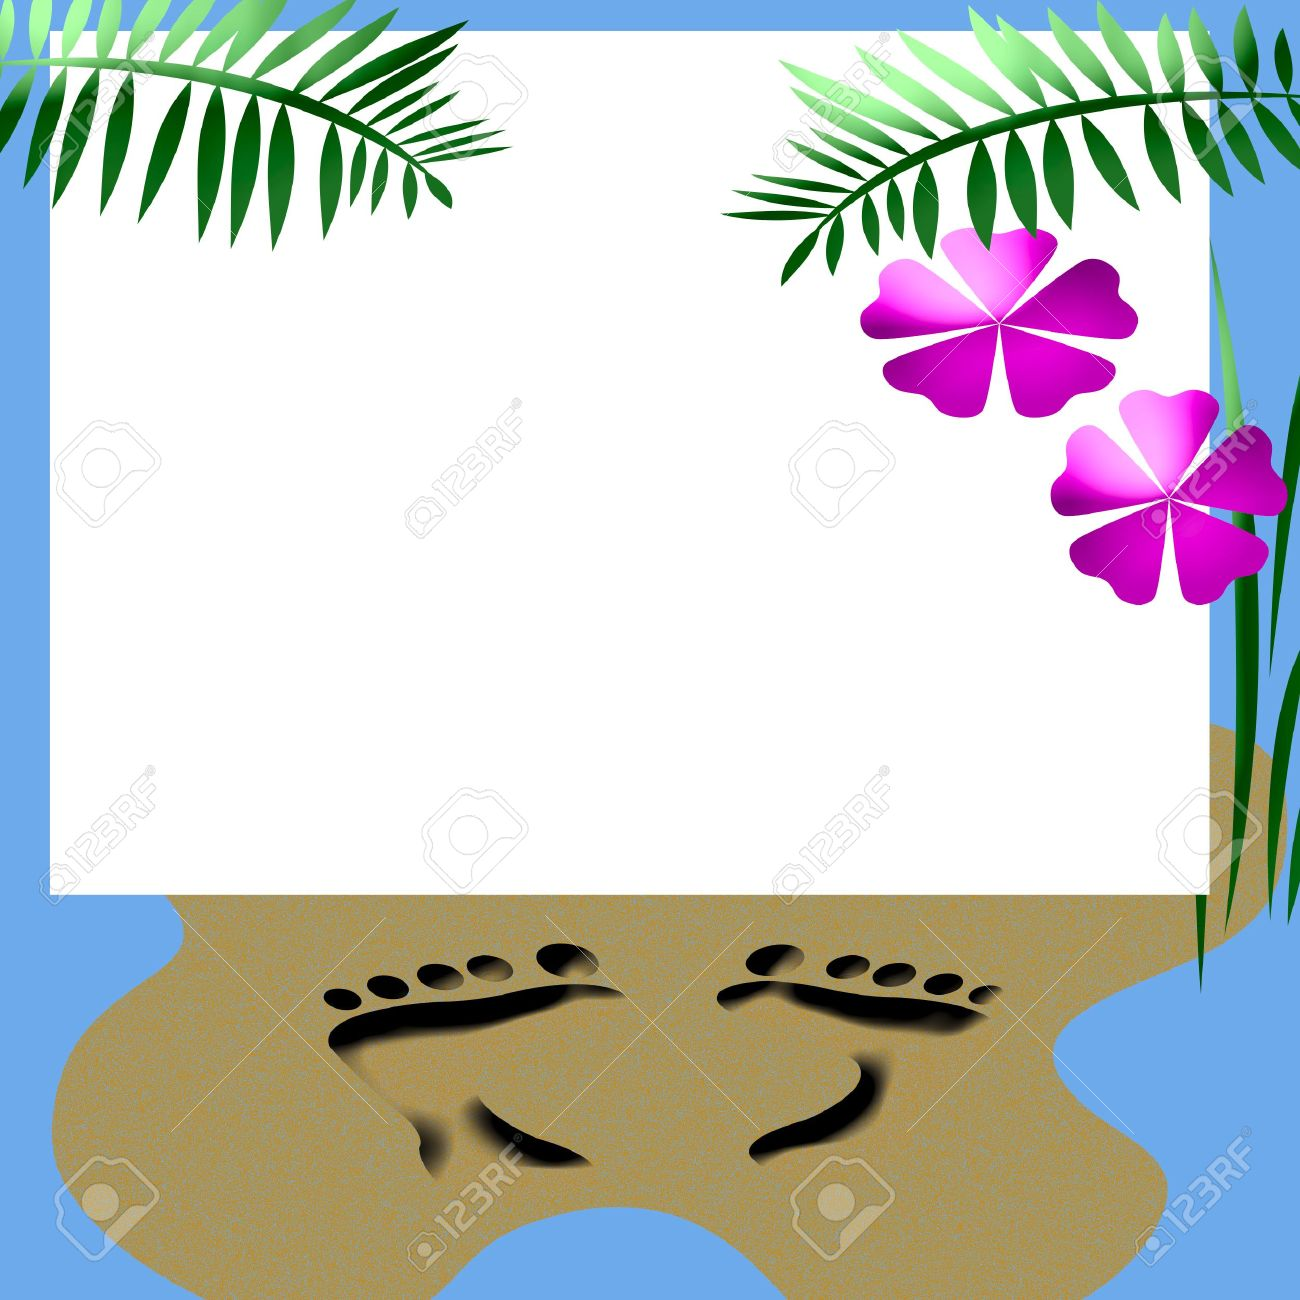 Beach Party Invitation Blank Center With Beach Accents Stock Photo ...